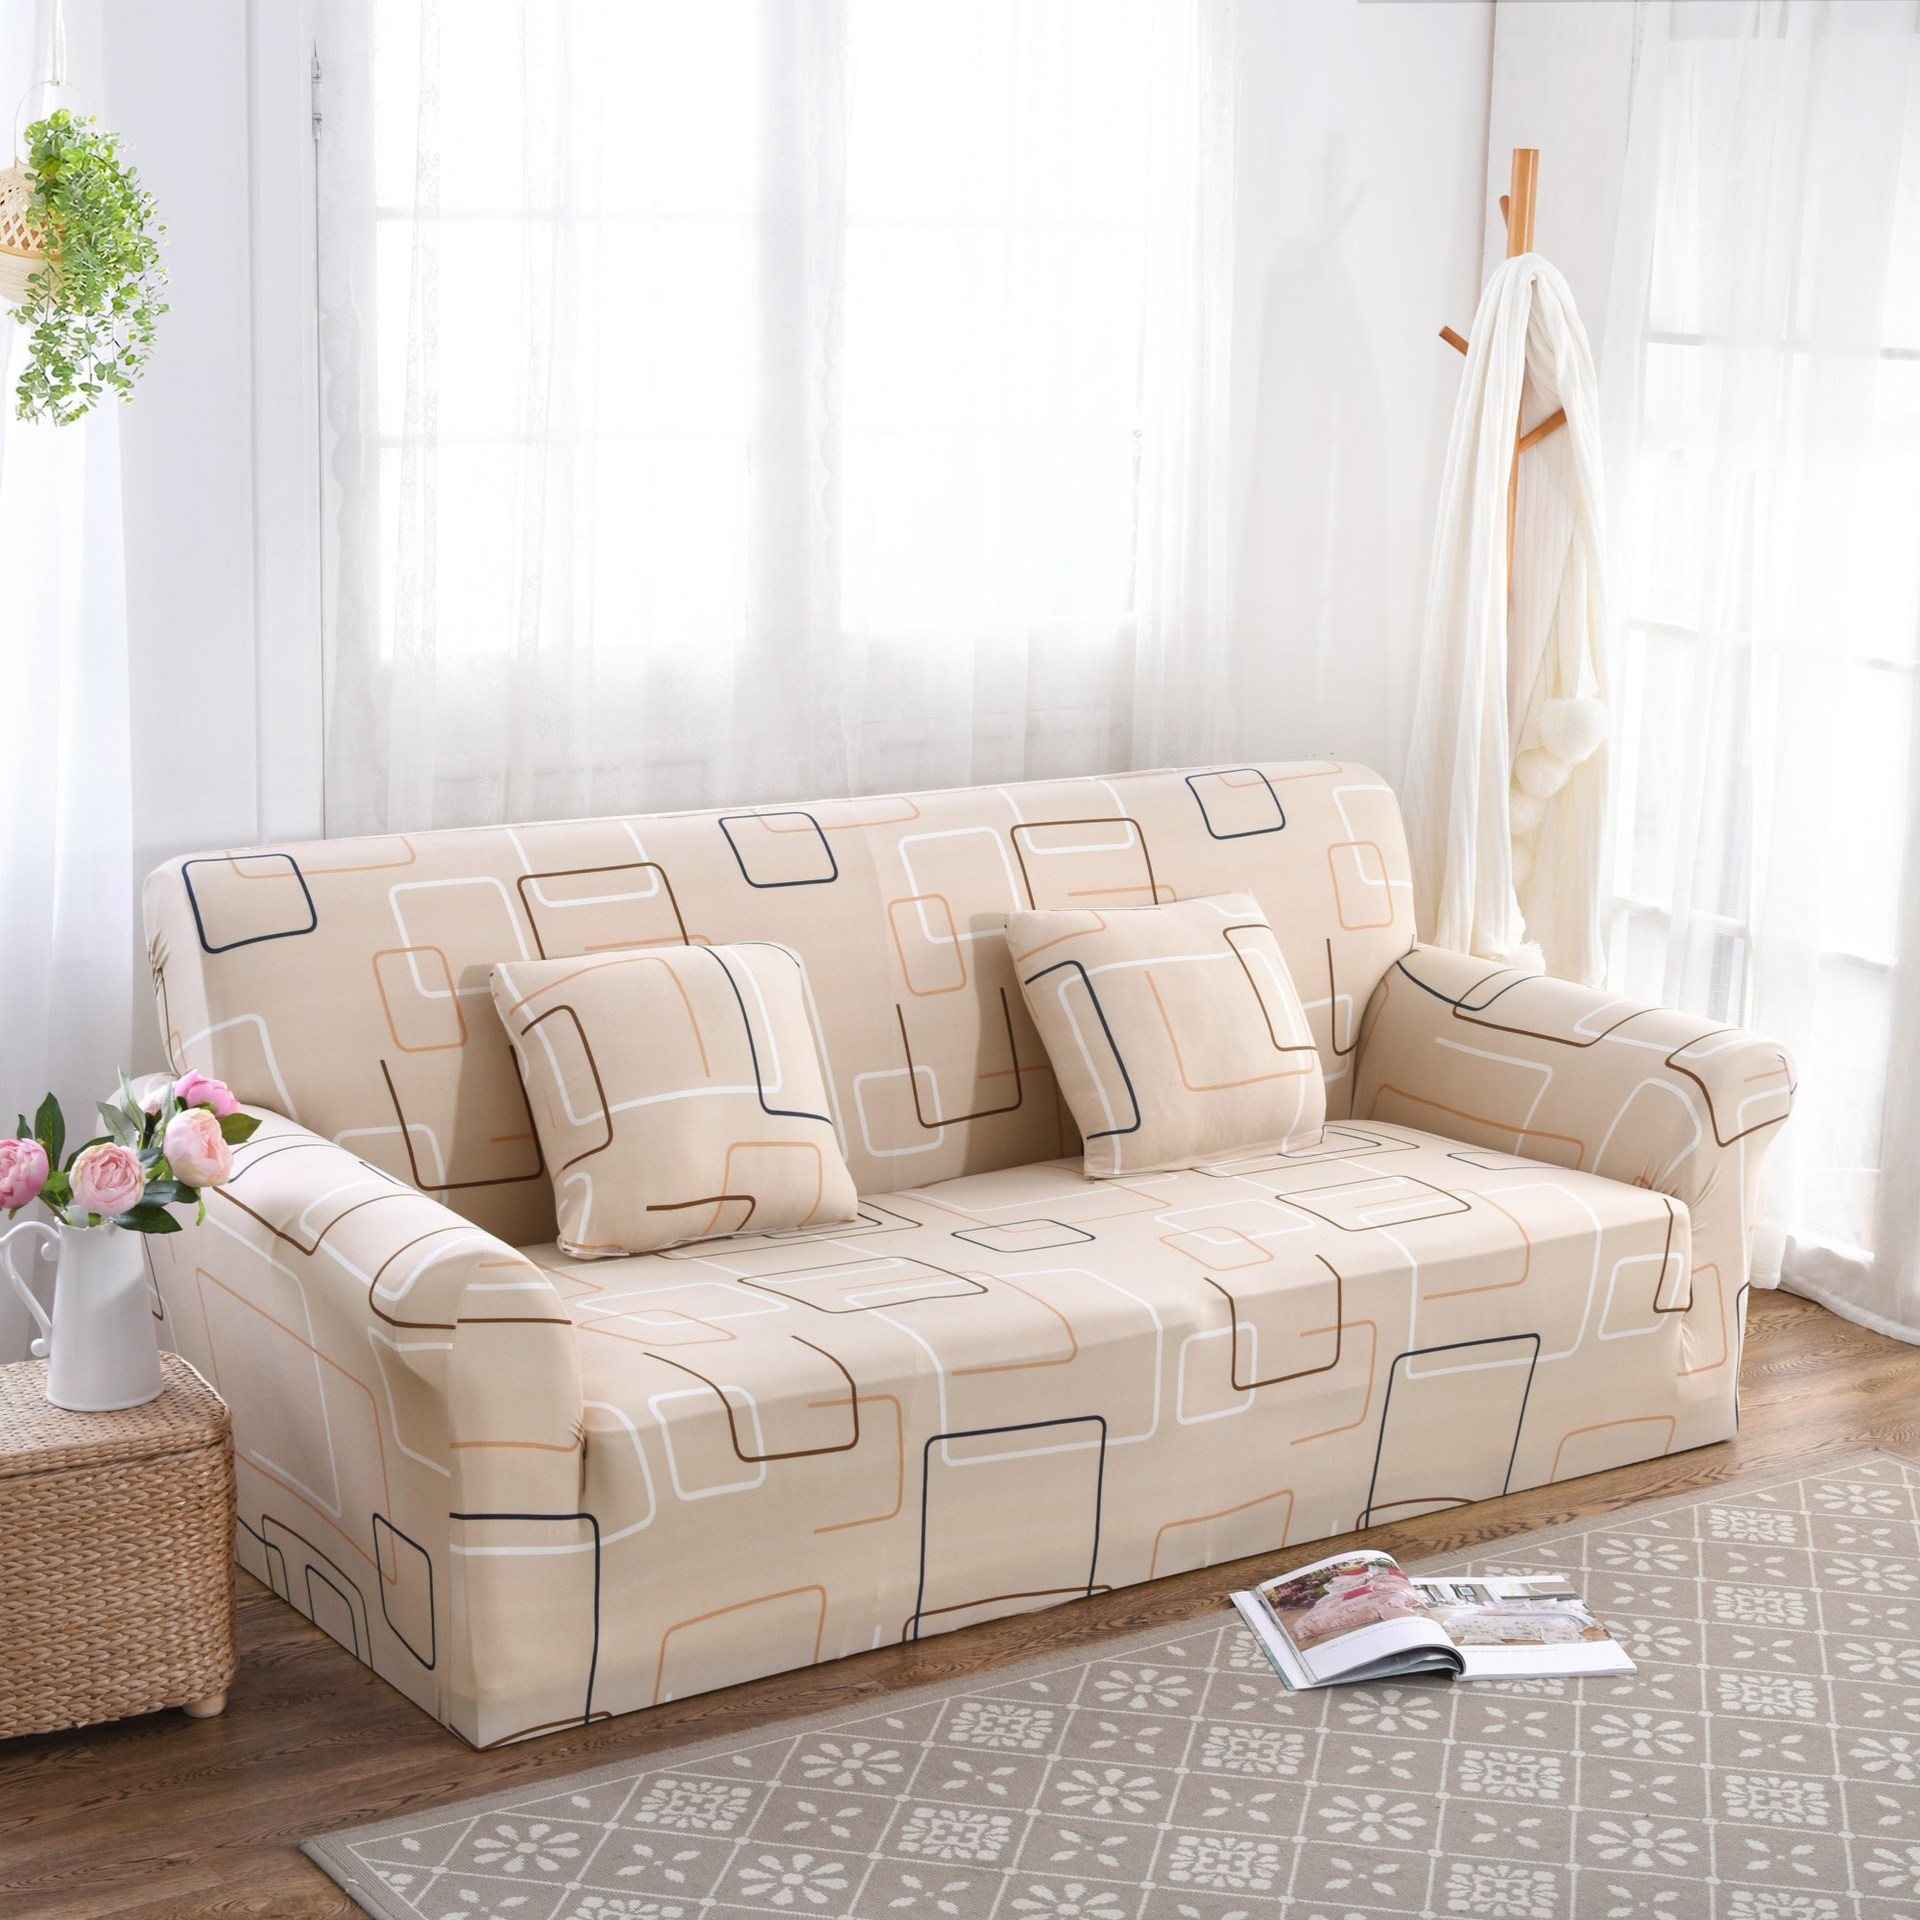 line Buy Wholesale universal sofa covers from China universal